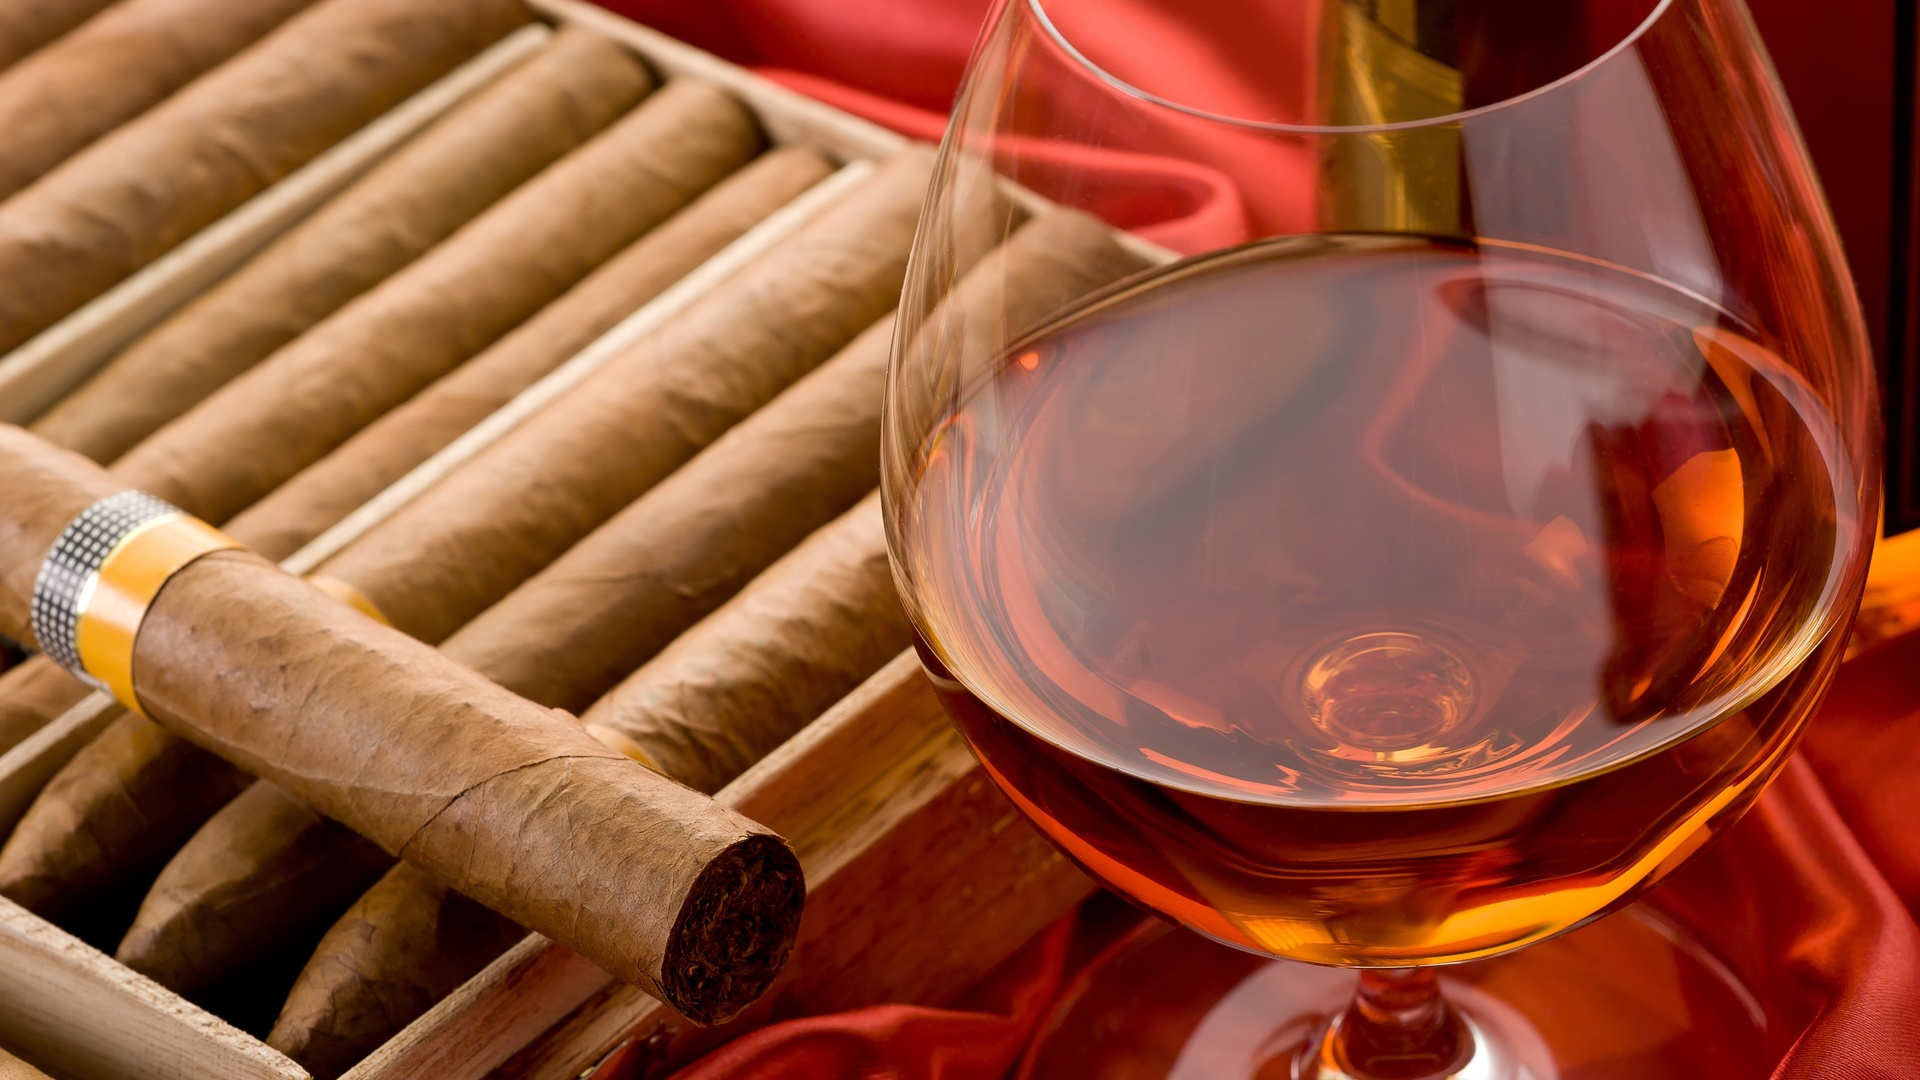 Cuban Cigar wallpaper 231945 1920x1080